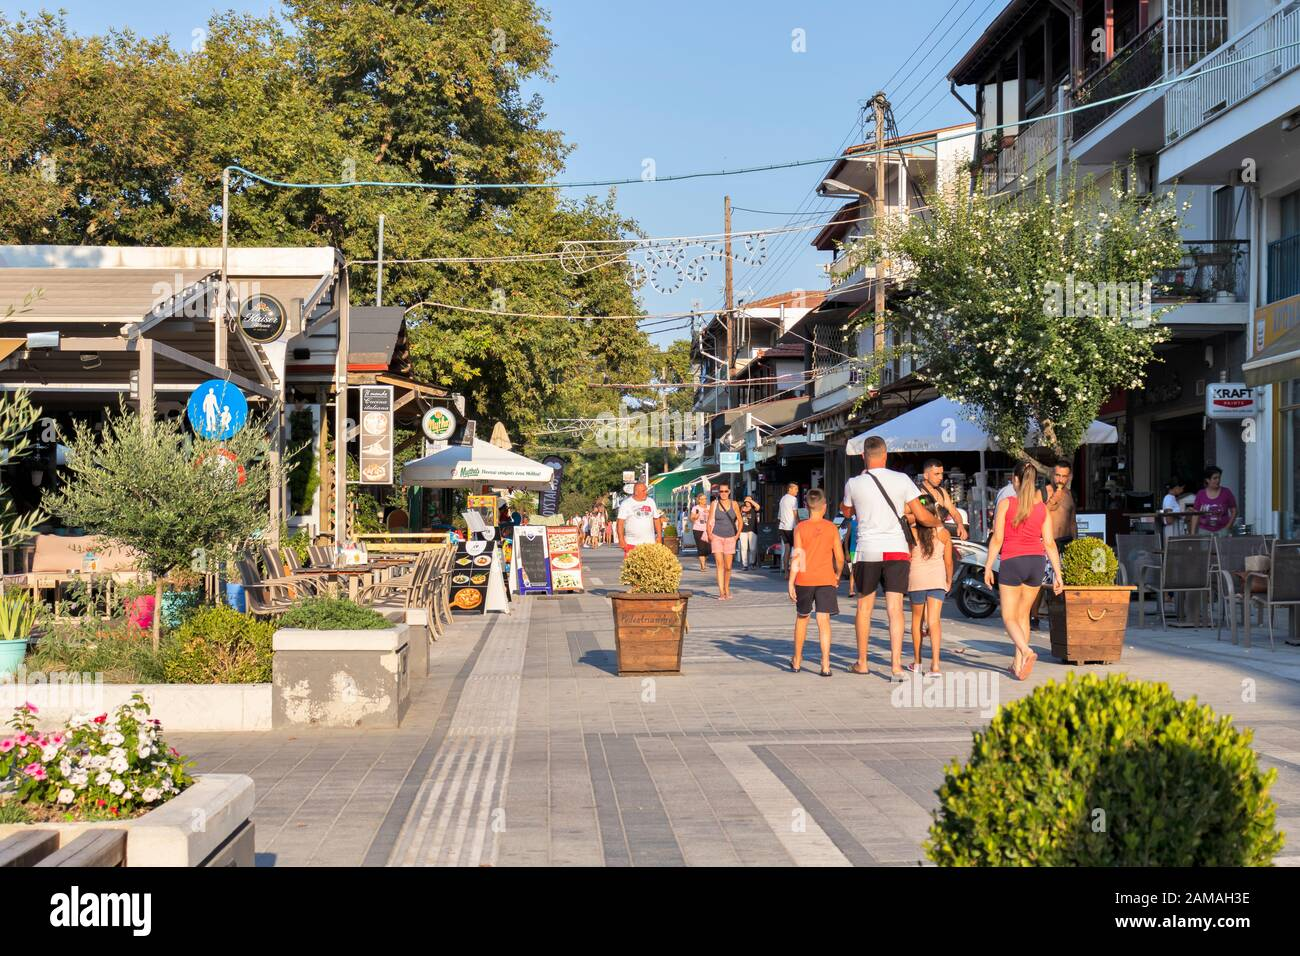 STAVROS, GREECE - AUGUST 19, 2019: Main pedestrian street of town of Stavros, Chalkidiki, Central Macedonia, Greece Stock Photo